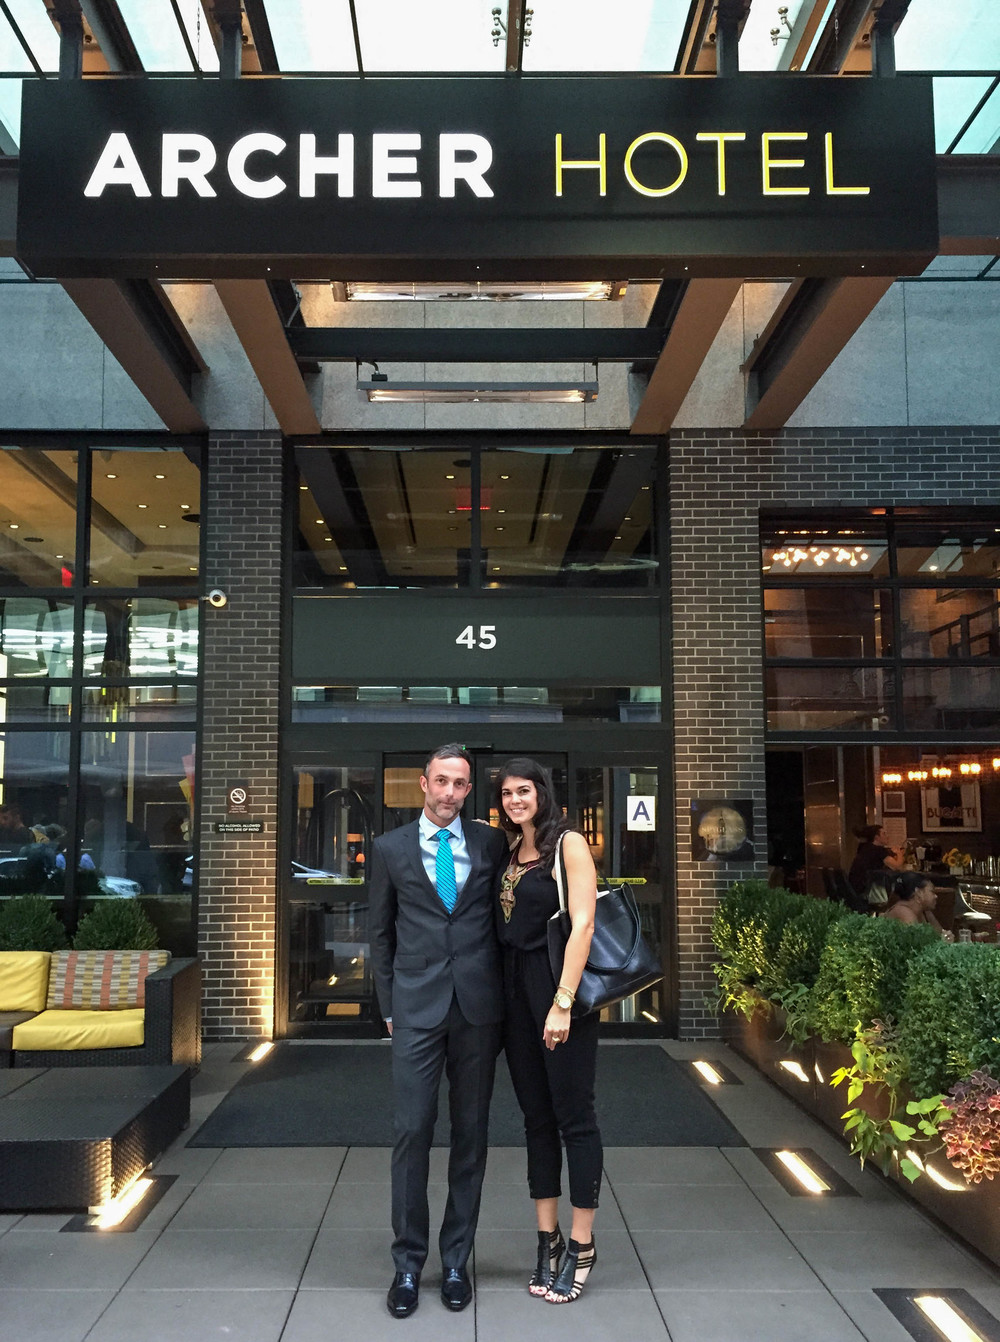 LaurenSchwaiger-Life-Style-Travel-Blog-Archer-Hotel-NYC.jpg